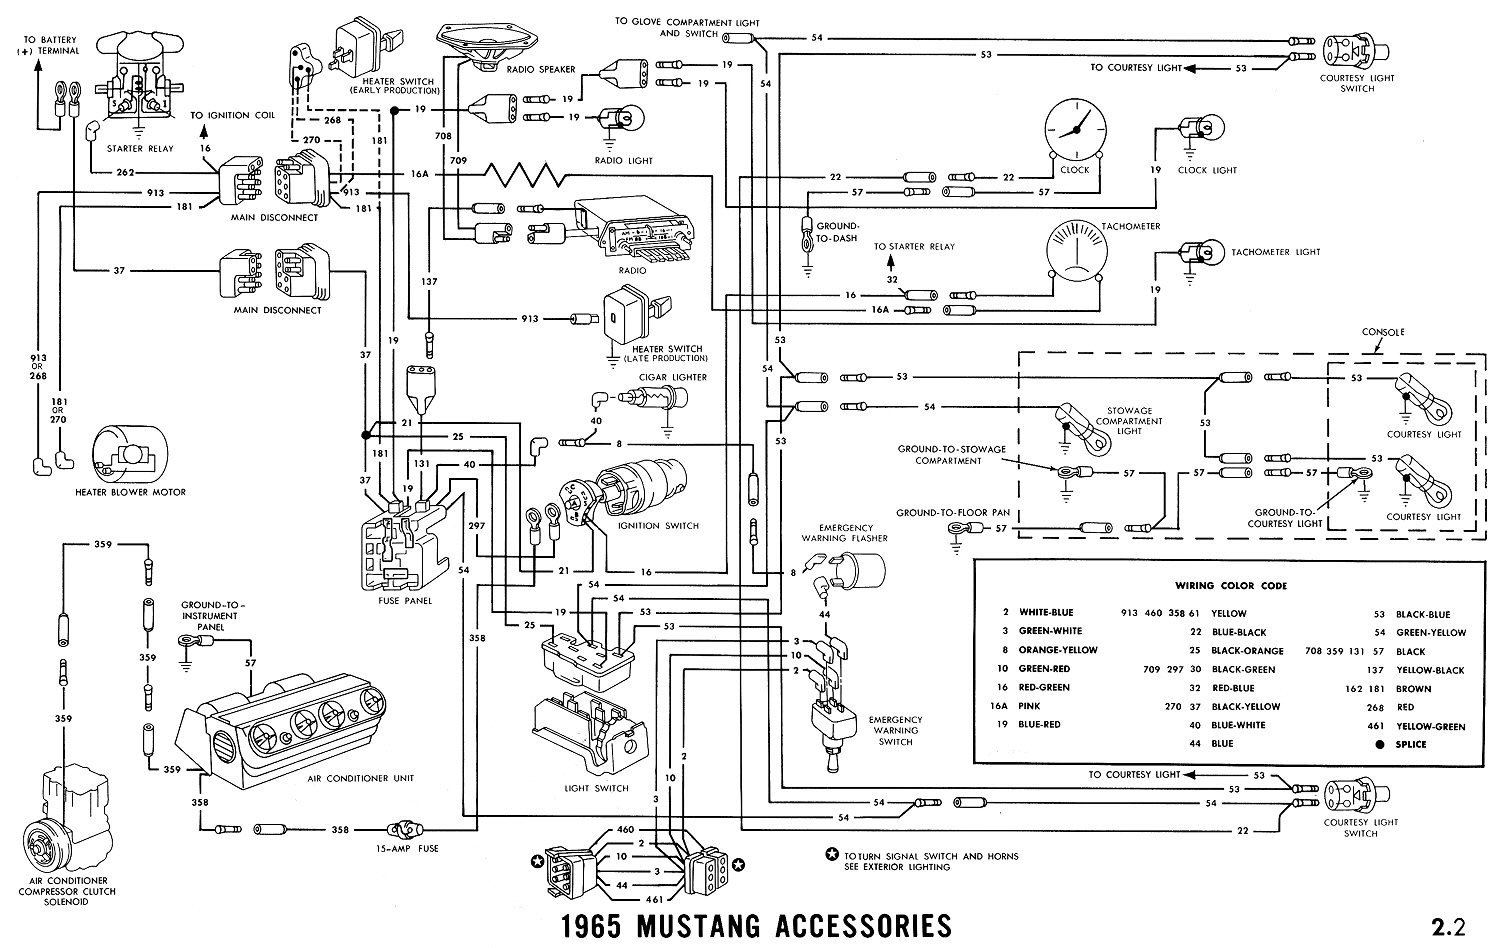 1965i 1965 mustang wiring diagrams average joe restoration 1965 mustang wiring diagram pdf at couponss.co